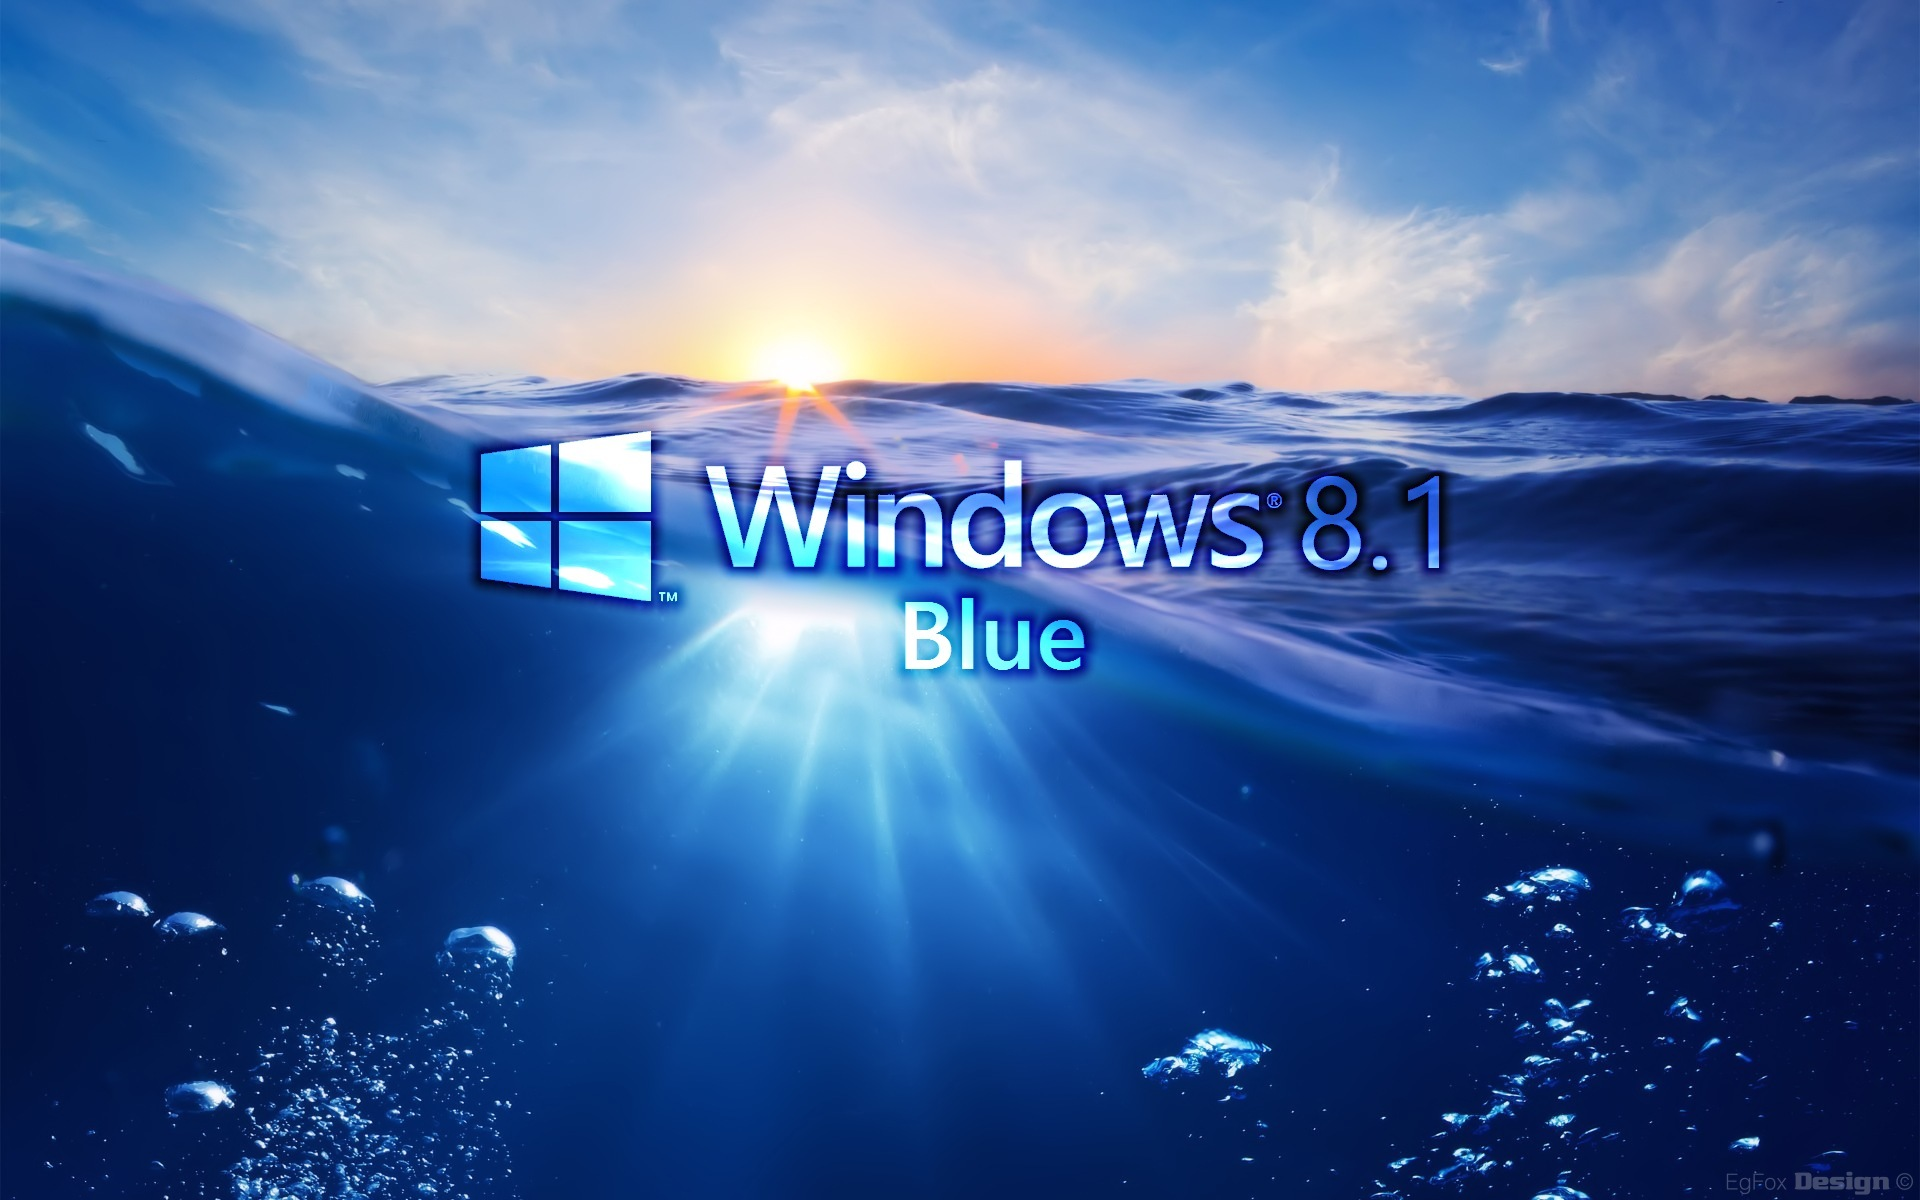 Windows 8.1 HD Wallpapers Free Download